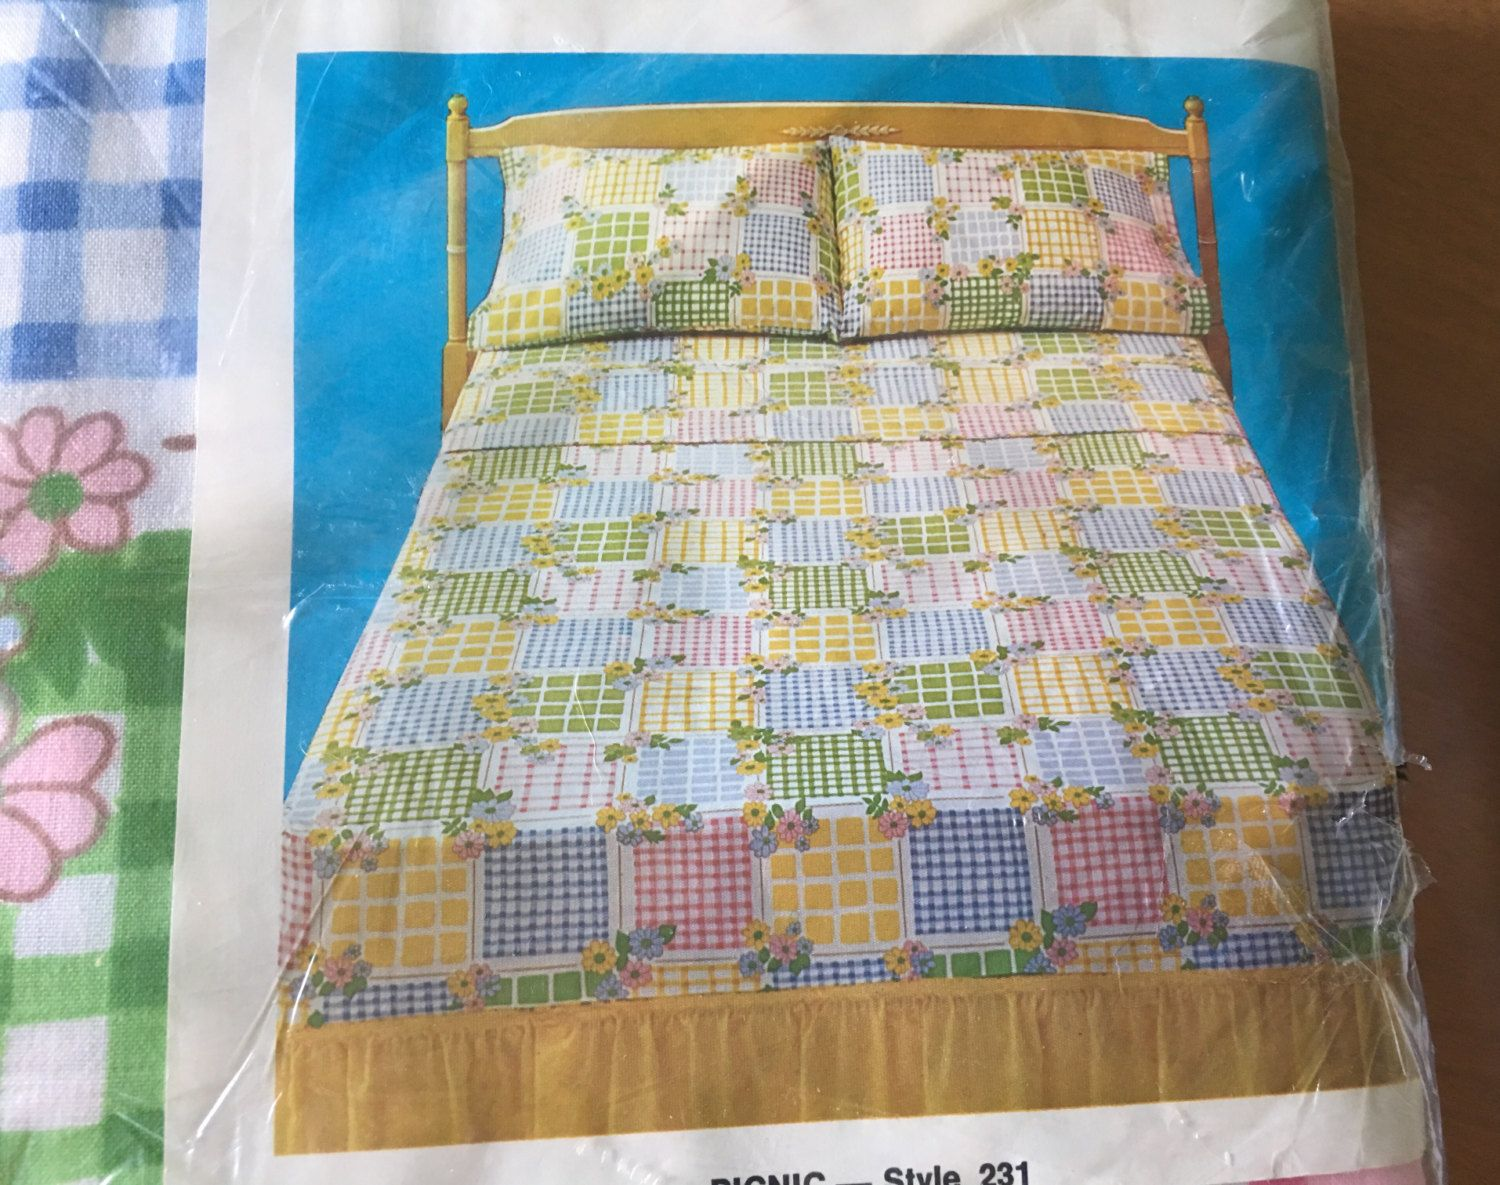 Patchwork bed sheets patterns - Vintage 1975 Cannon Monticello Picnic Pattern Gingham Floral Patchwork Print Bed Sheets